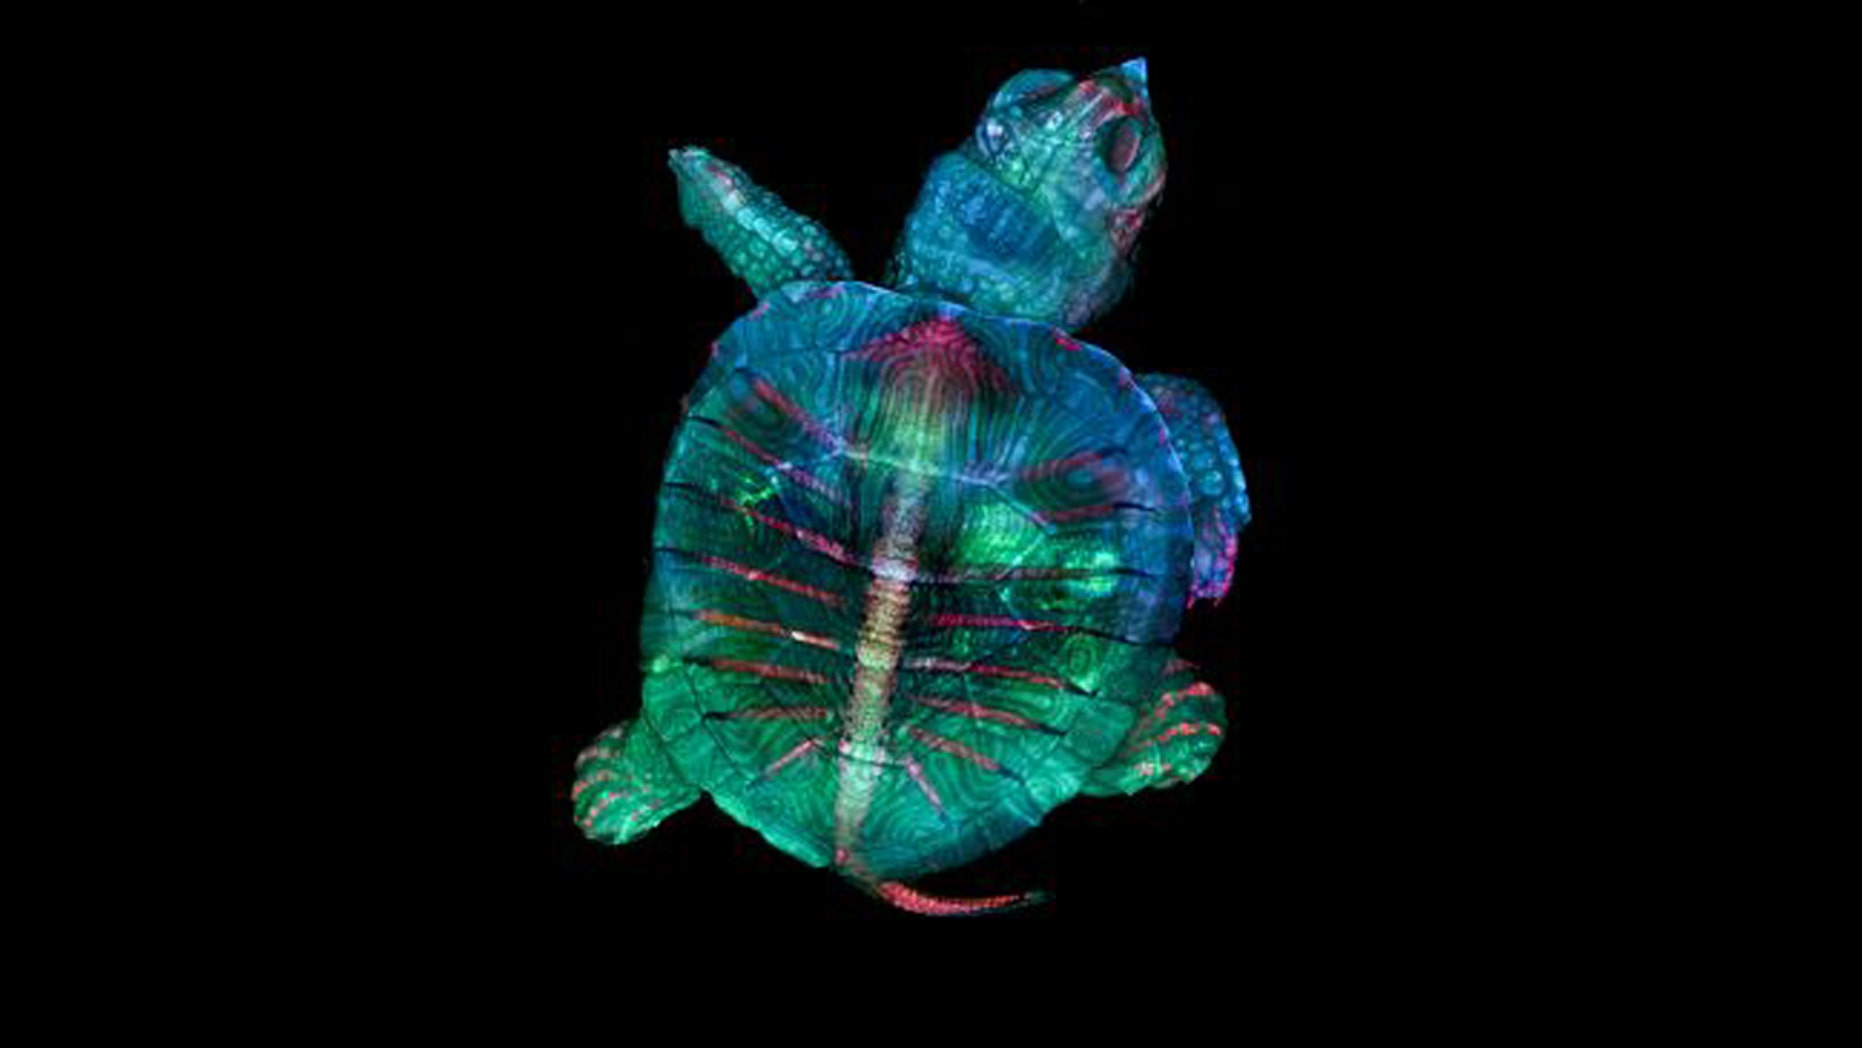 First place went to this colorful, fluorescent image of a tiny turtle embryo. (Credit: Teresa Zgoda and Teresa Kugler/Courtesy of Nikon Small World)